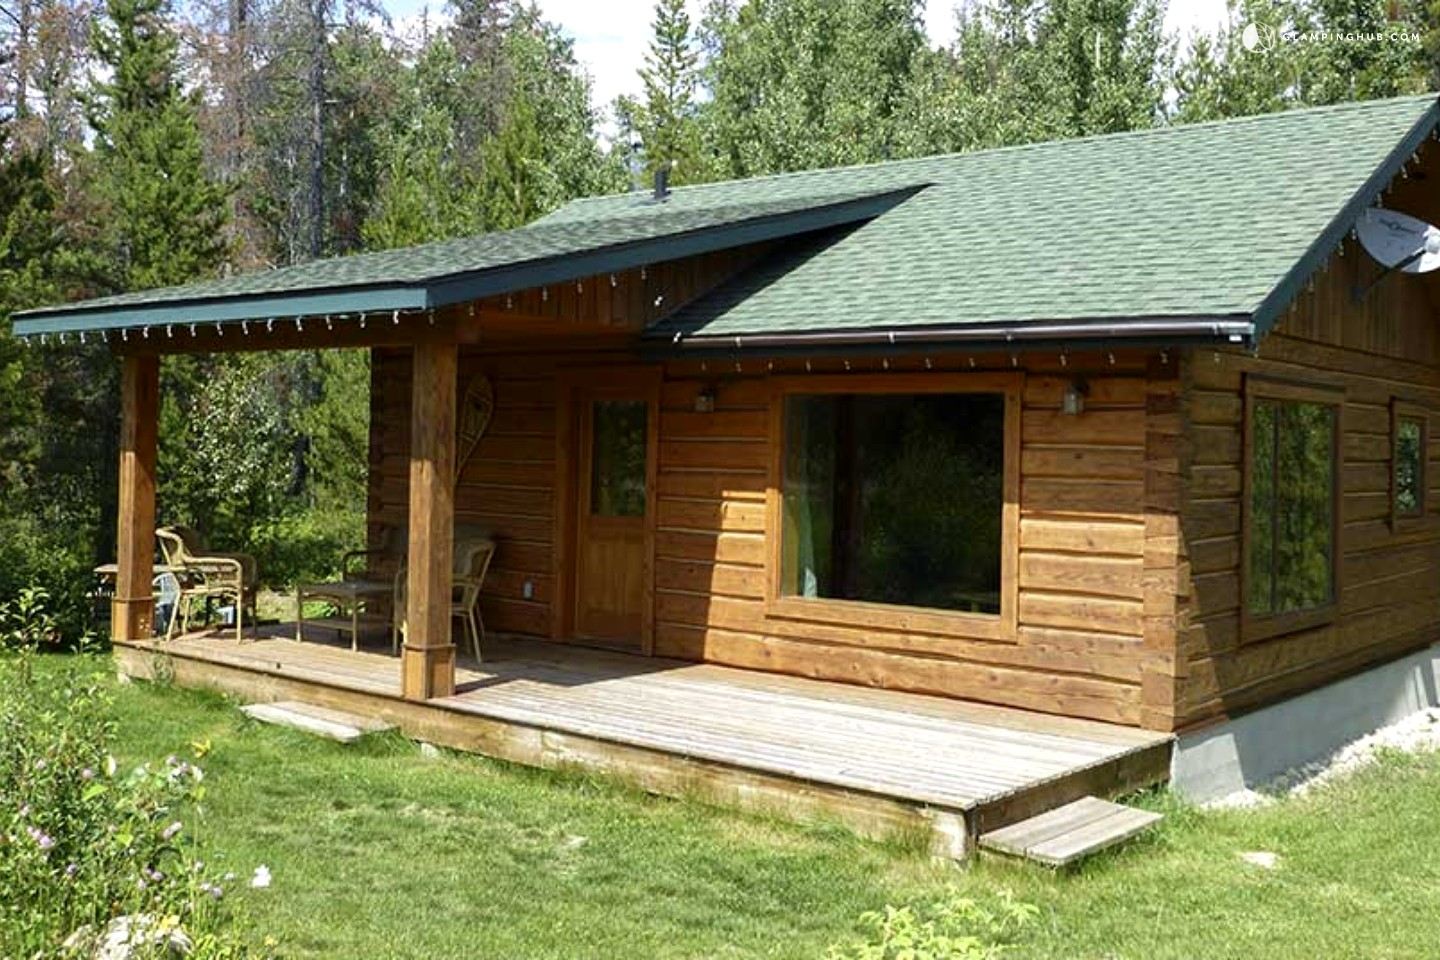 Log cabin rental in british columbia luxury camping in for Nearby campgrounds with cabins